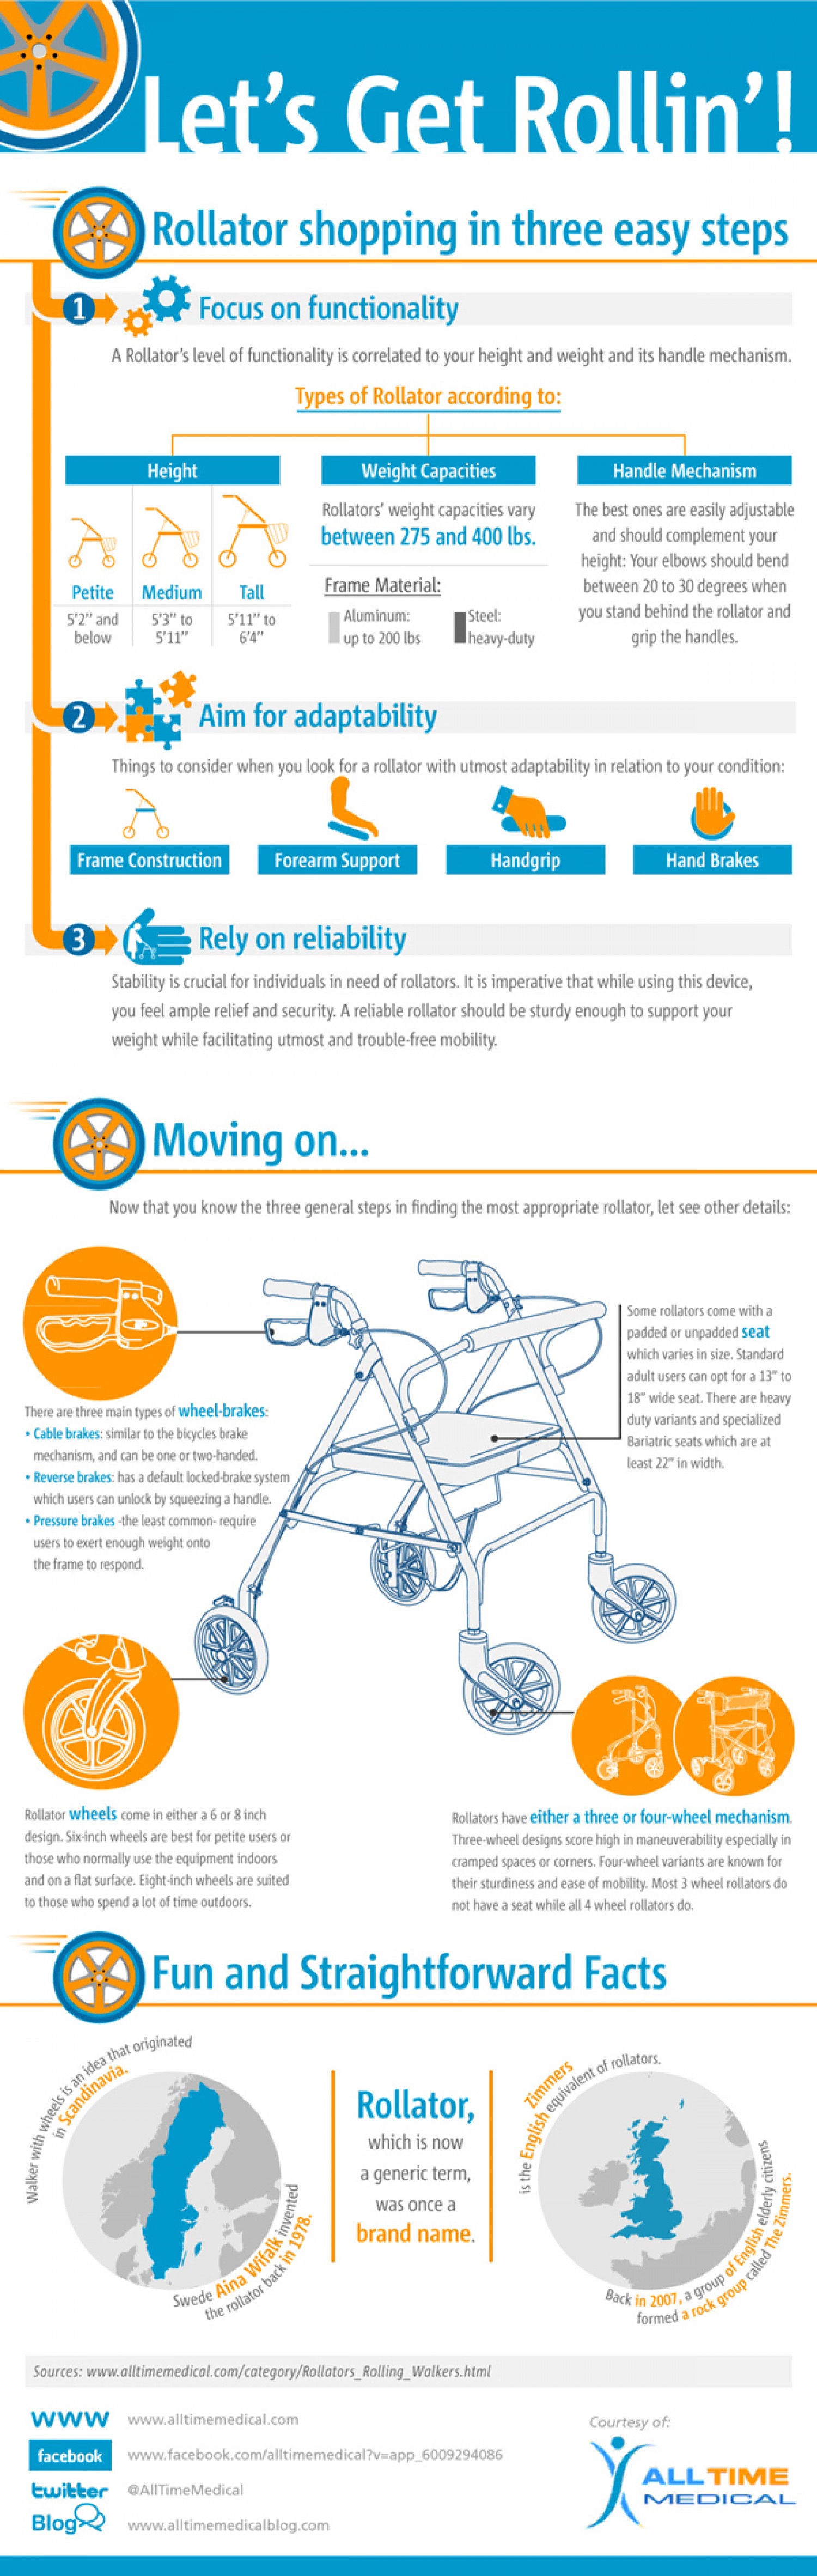 Let's Get Rolling: Shopping for A Rollator in Three Easy Steps Infographic